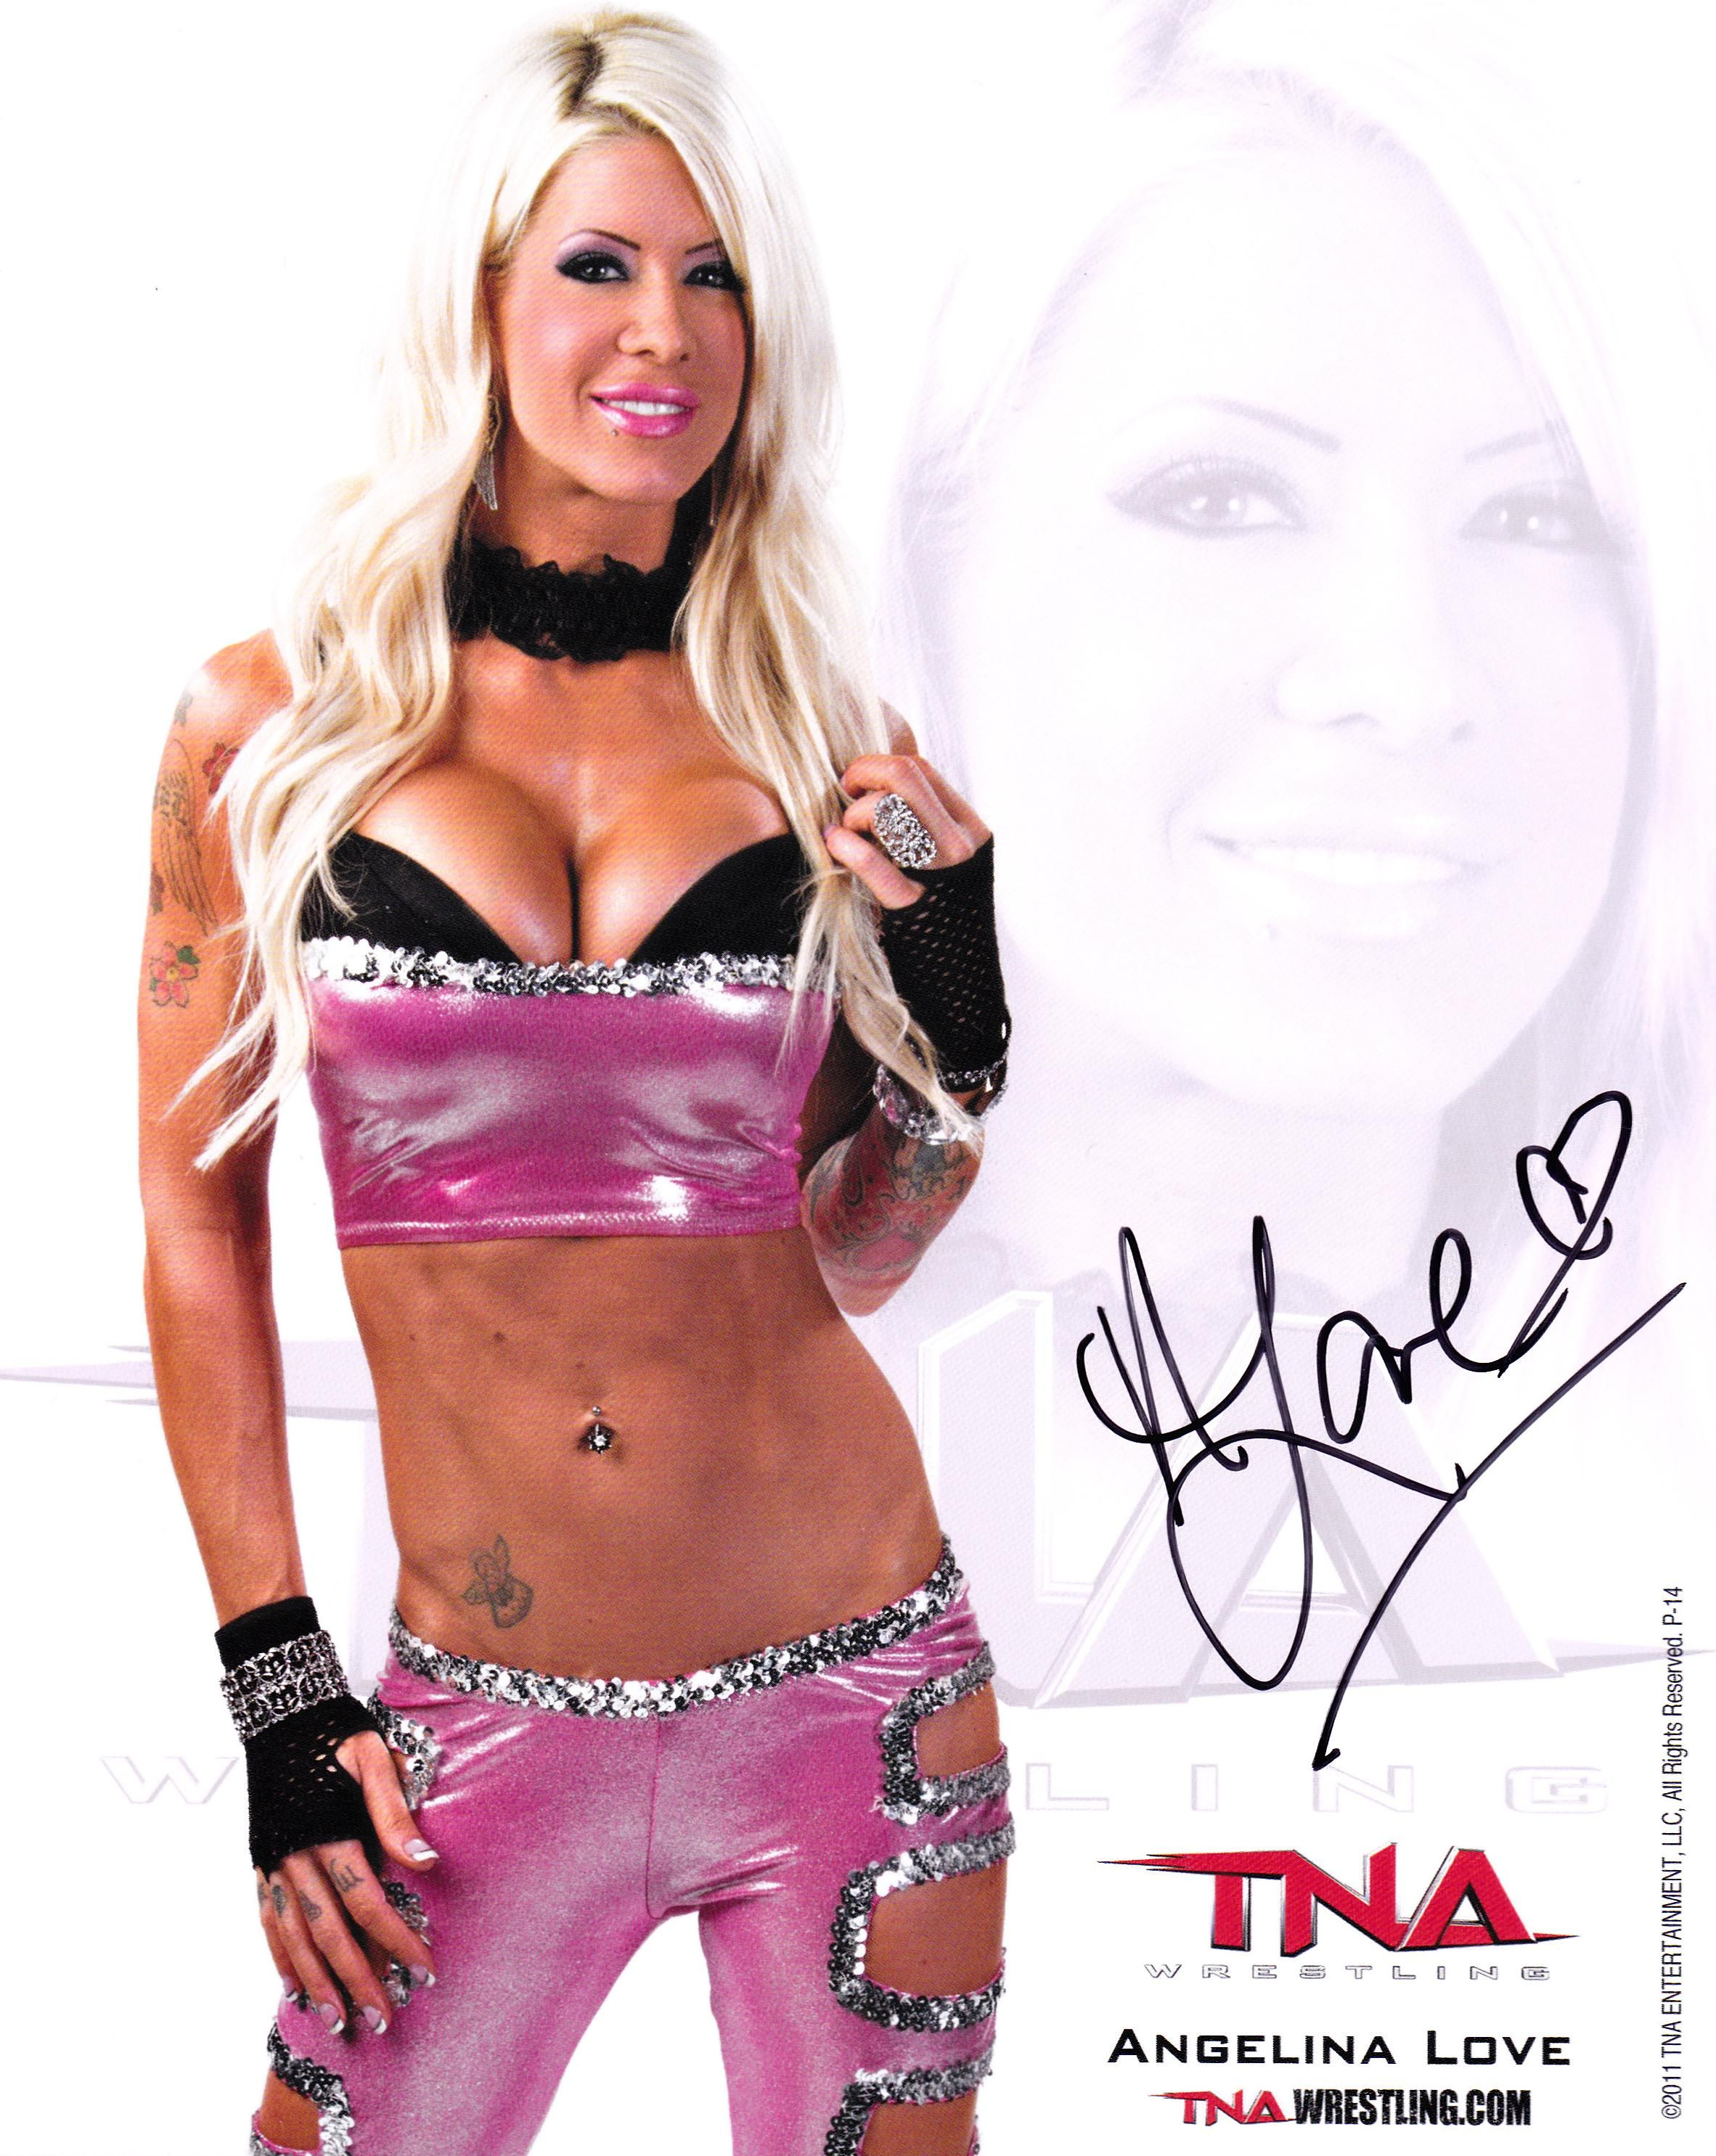 The best: who is angelina love dating 2013